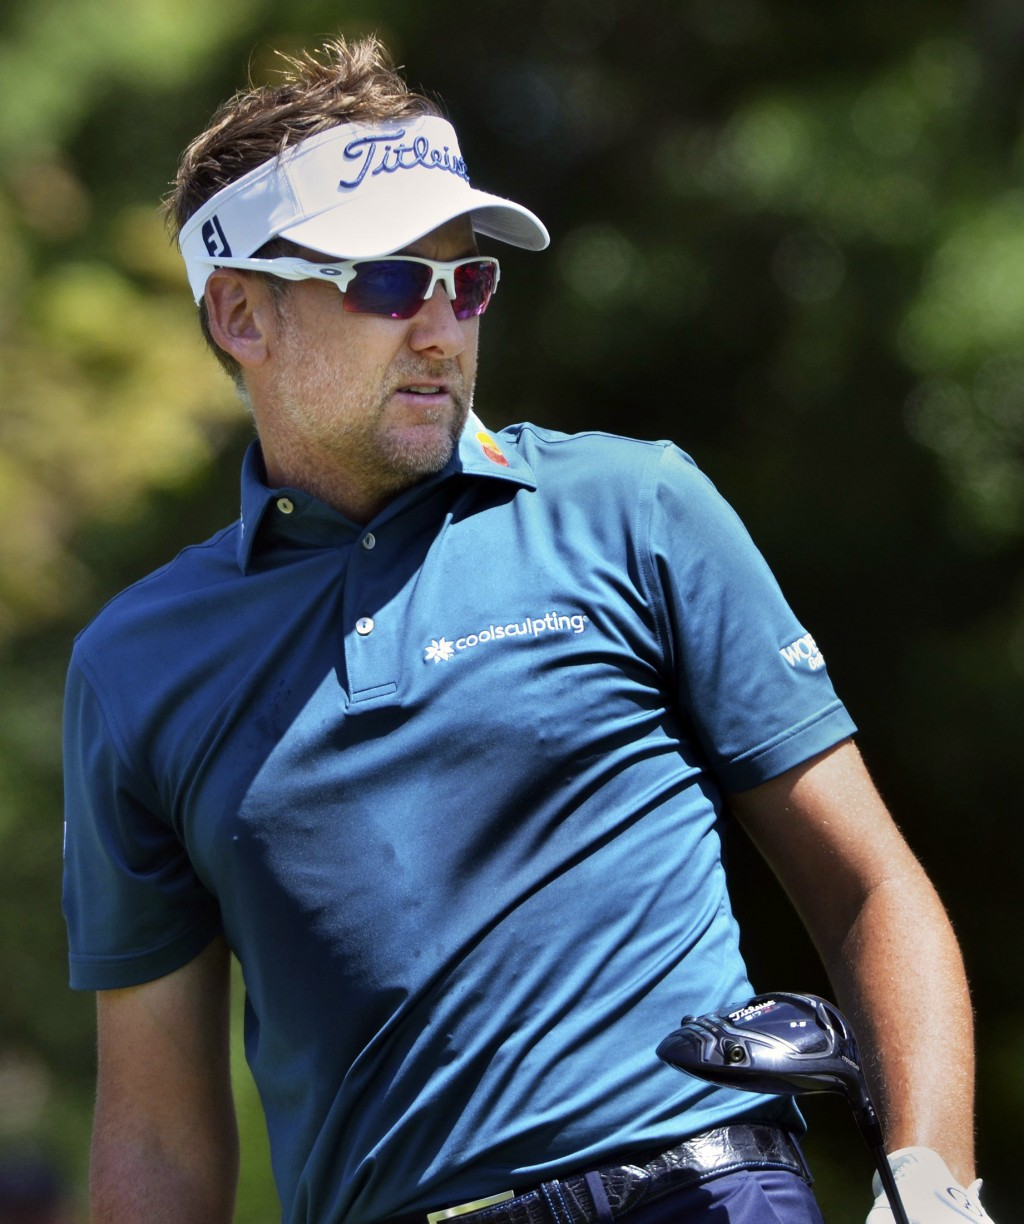 Ian Poulter watches his tee shot on  the third hole during the third round of the RBC Heritage golf tournament Saturday, April 14, 2018, at Harbour To